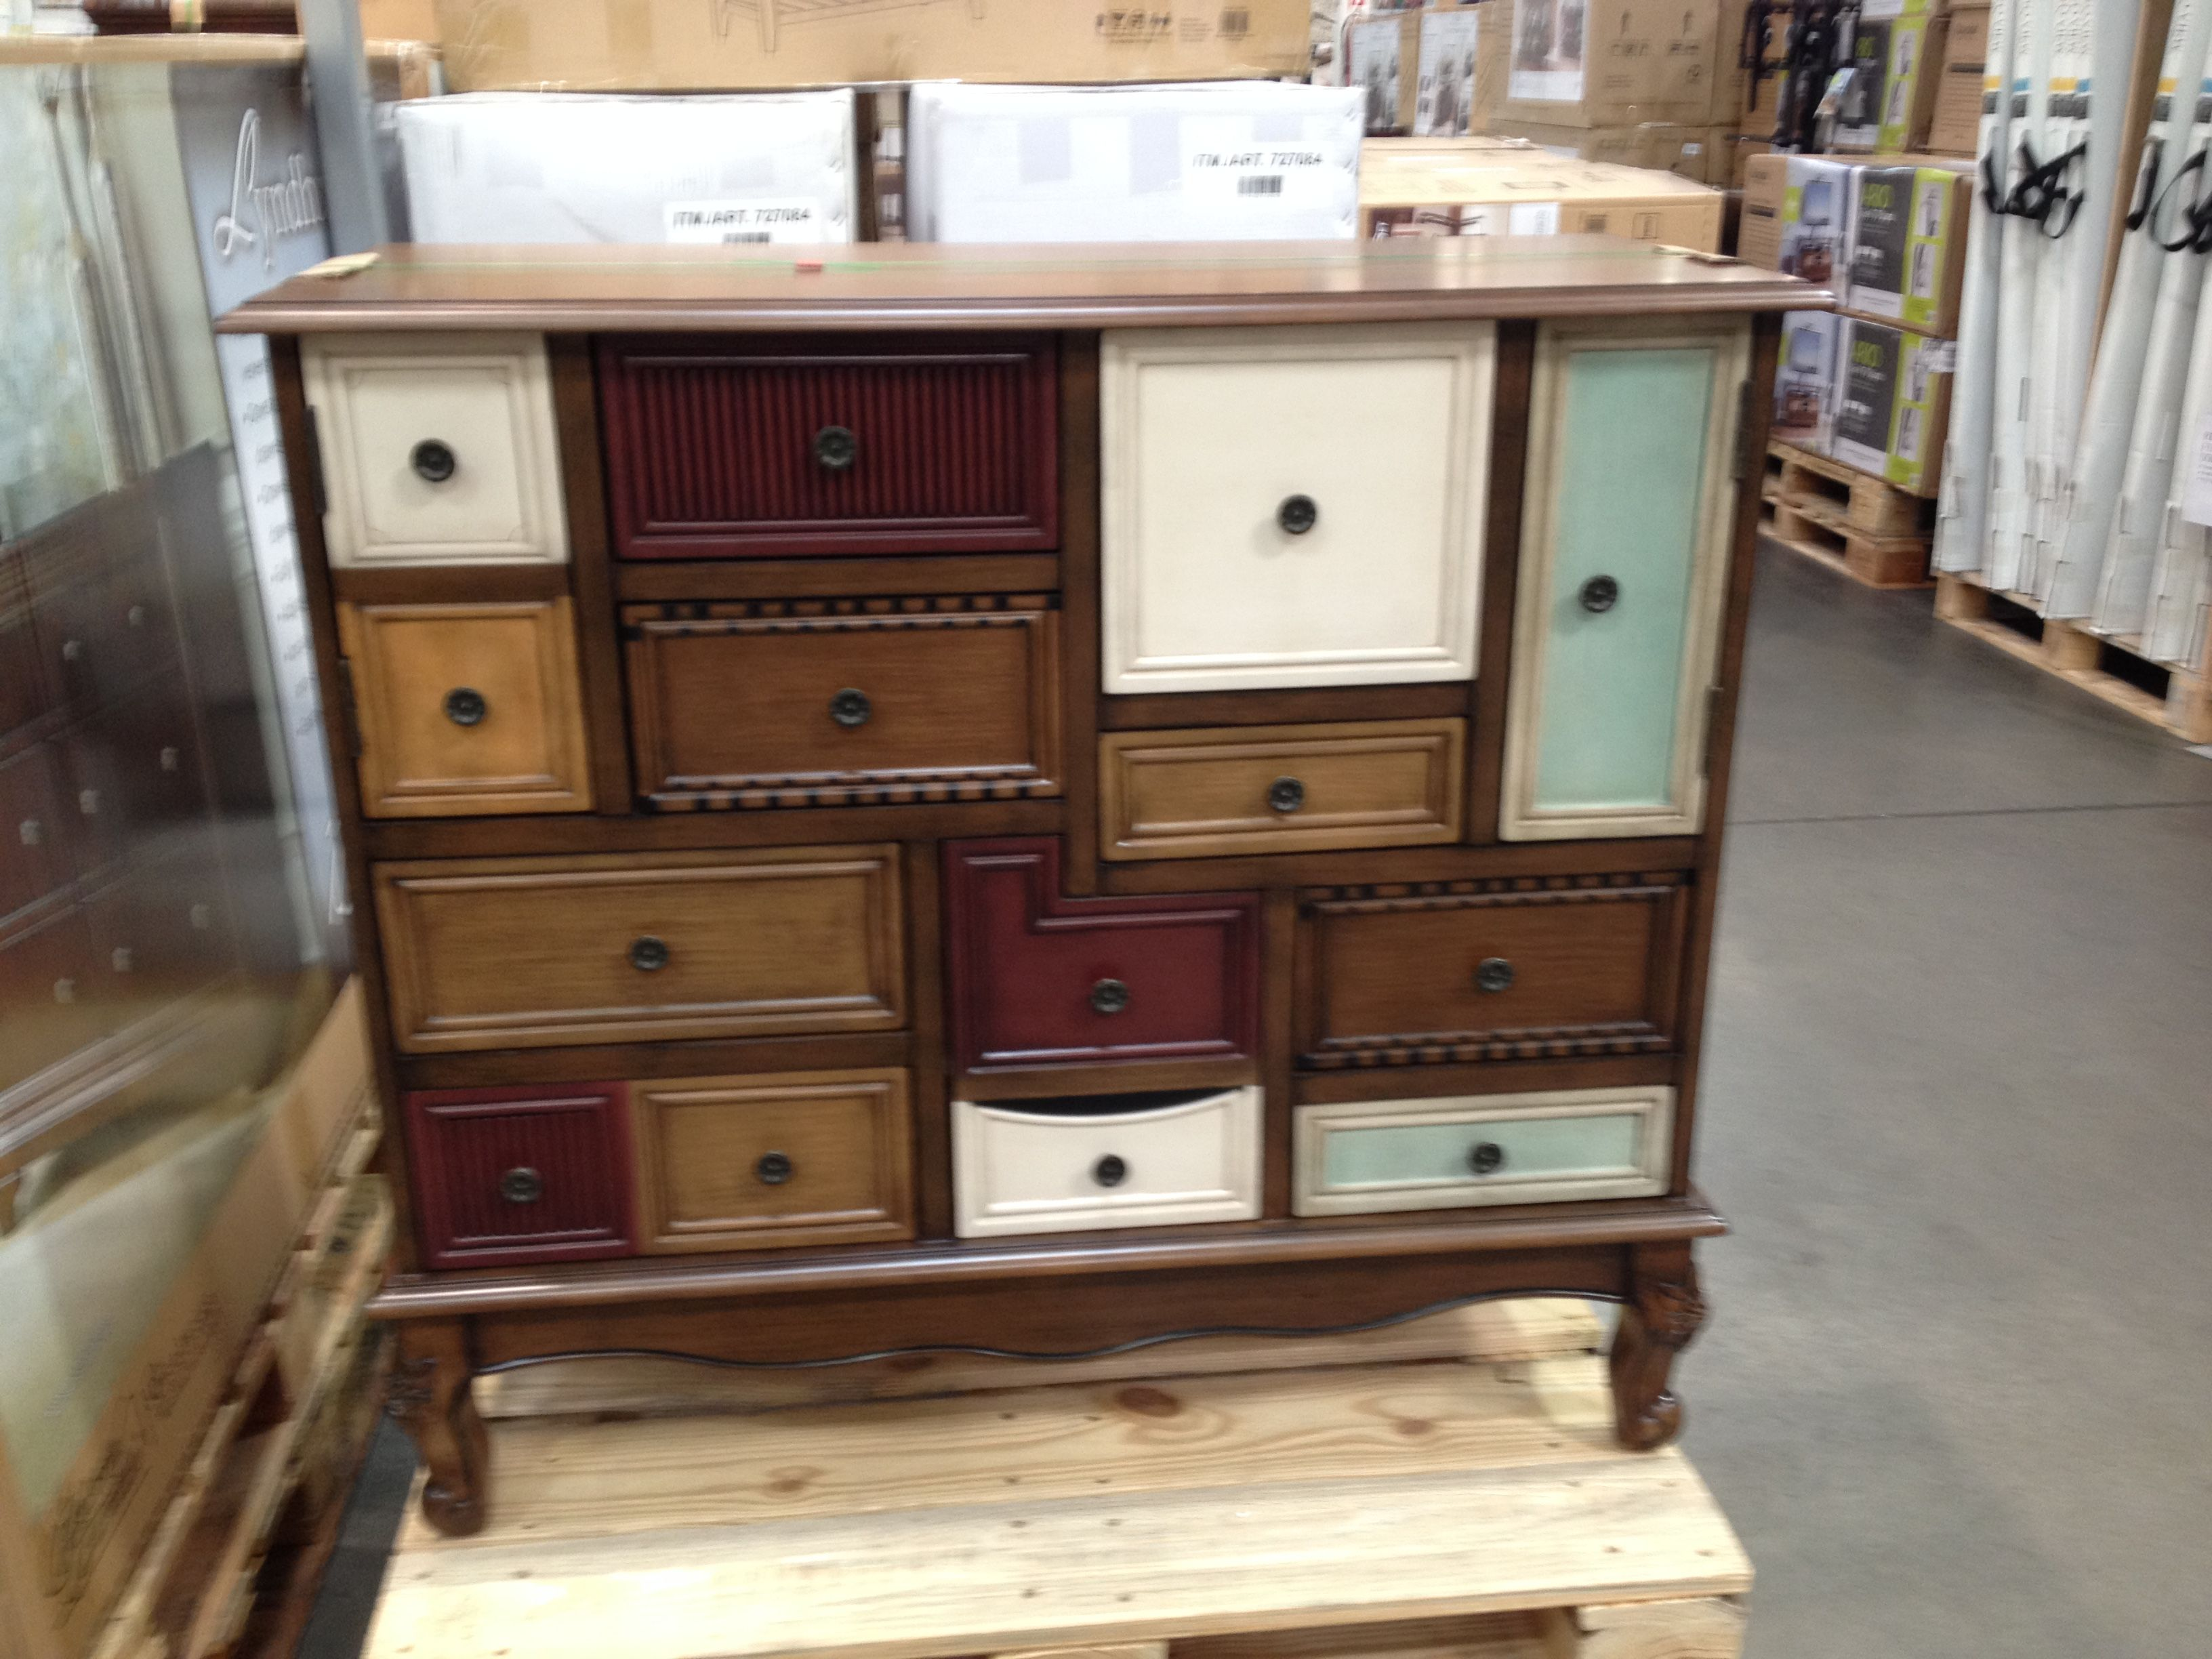 costco chest with all different sizes of drawers home 15021 | 7352e245a5ea3caacc64f5f431b71987